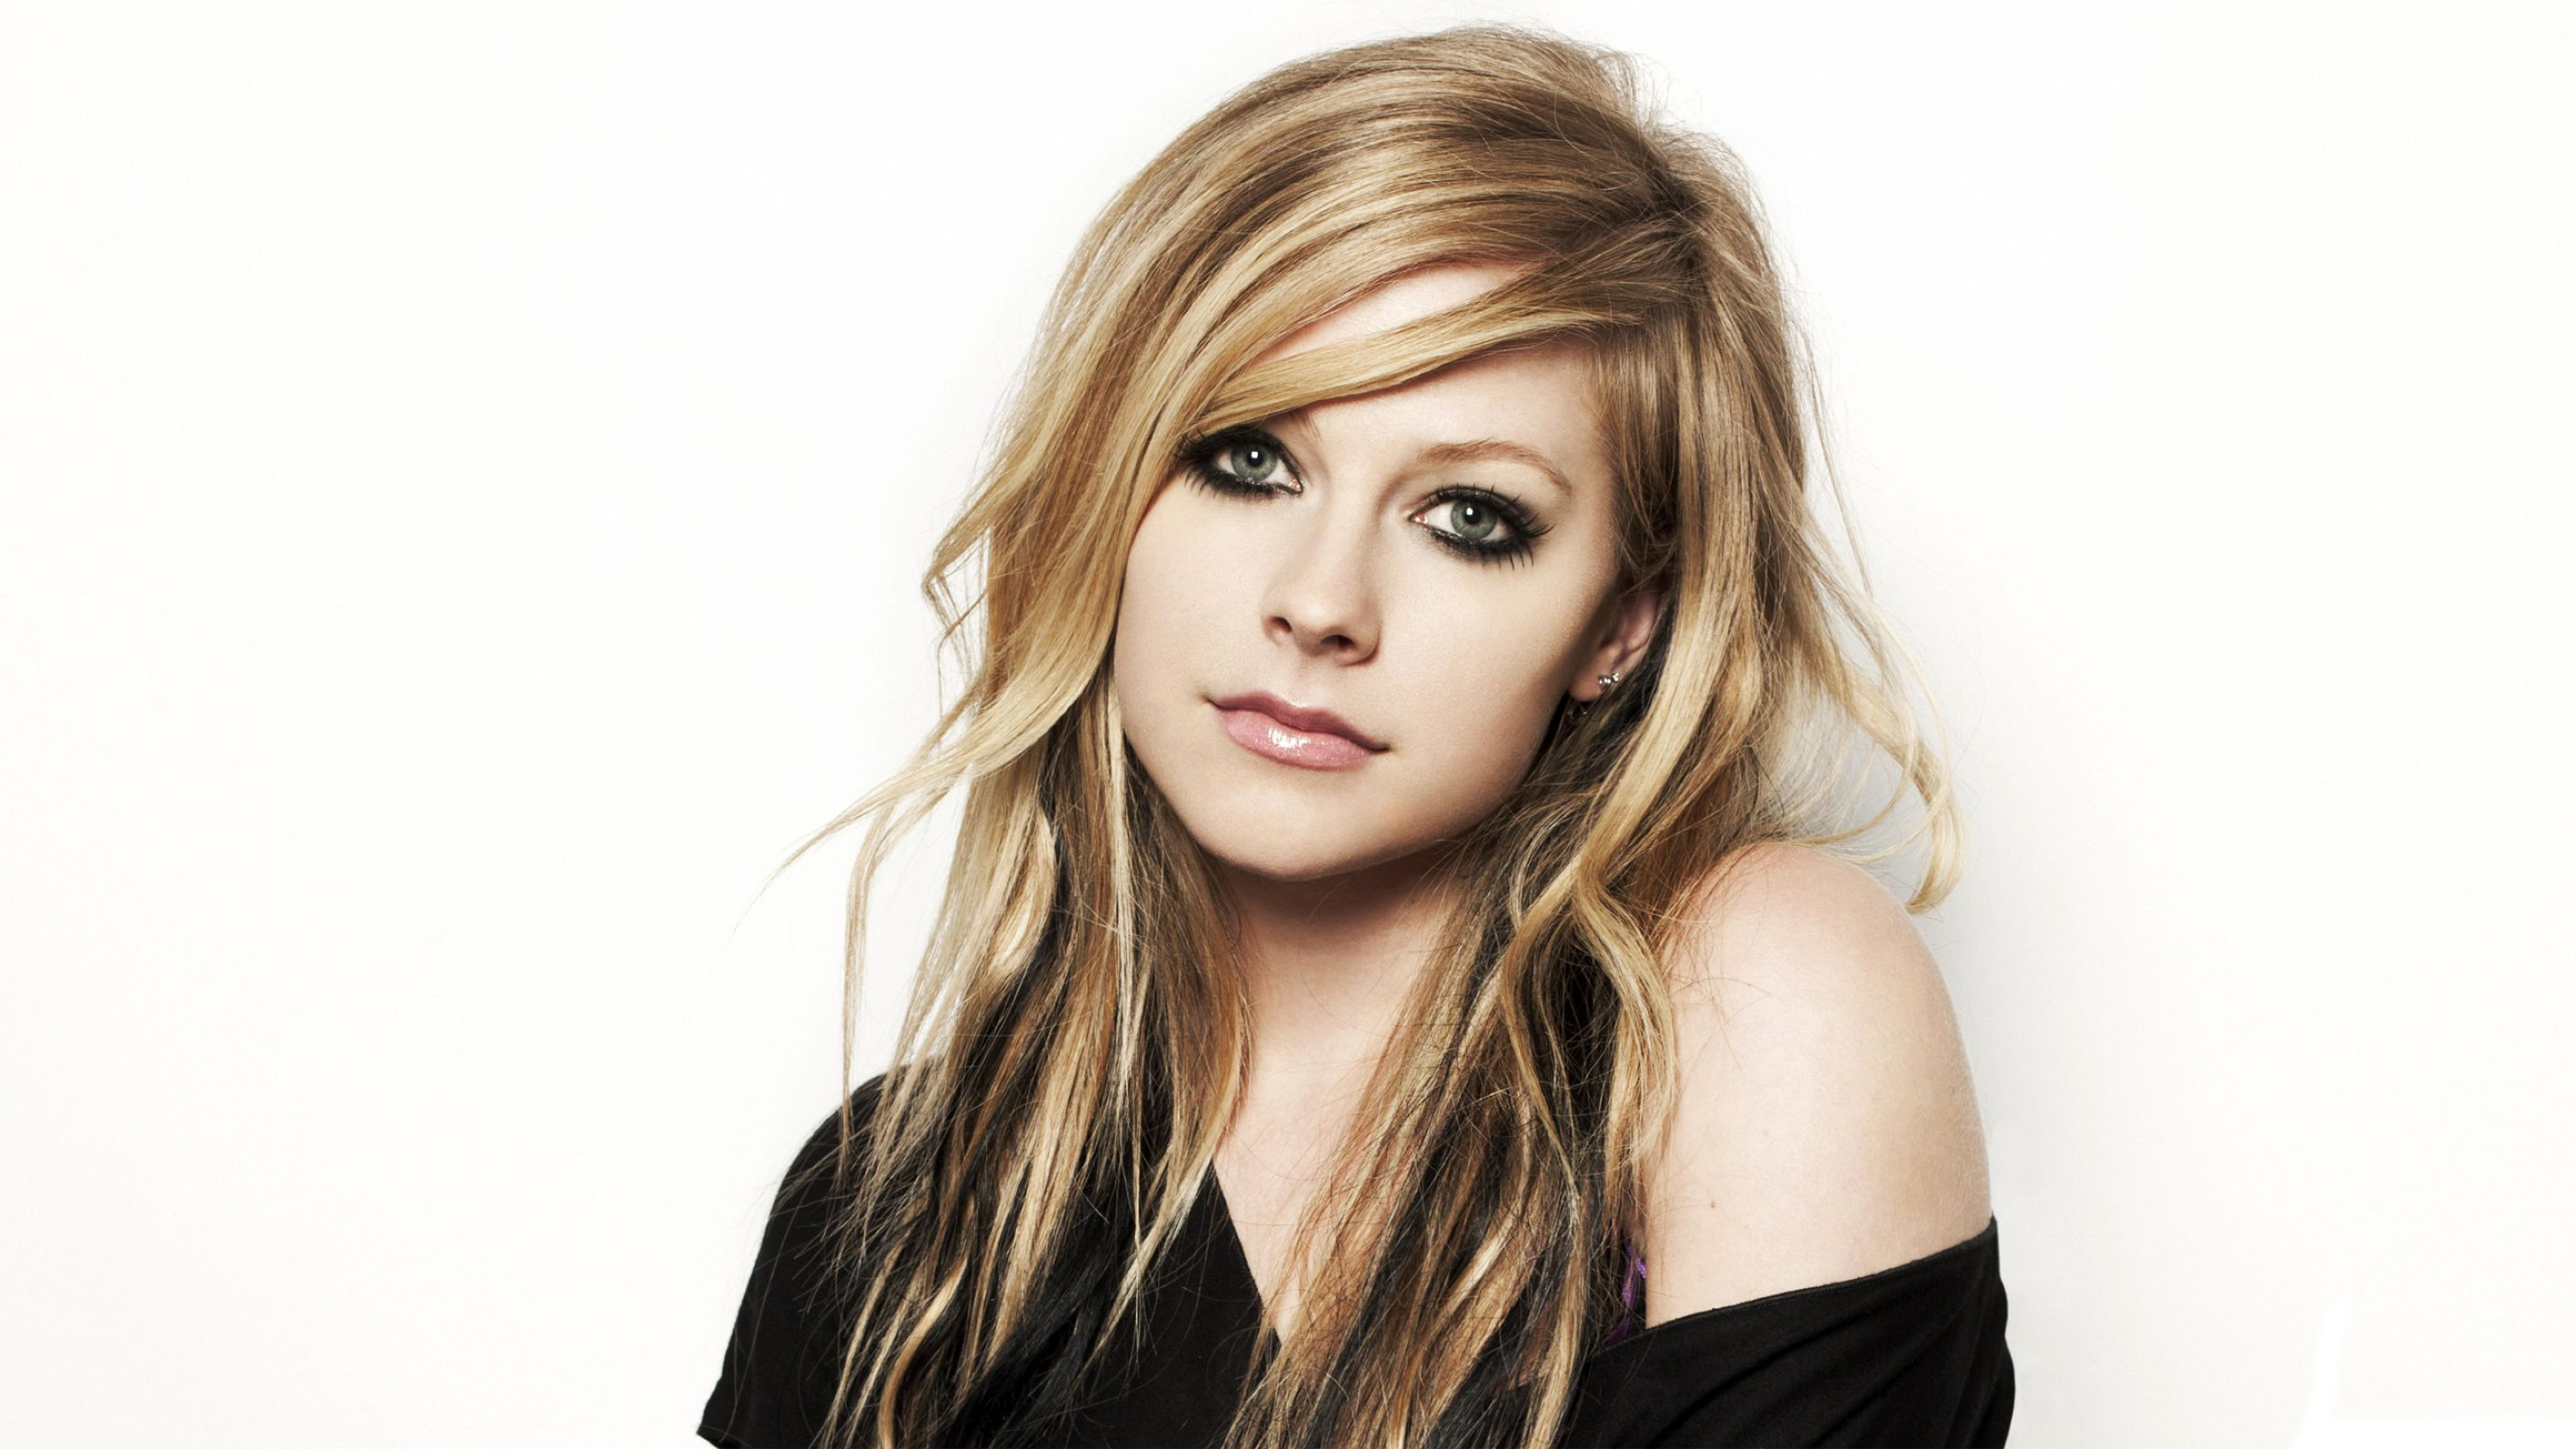 Download free HD Avril Lavigne 2016 Hd Wallpaper, image